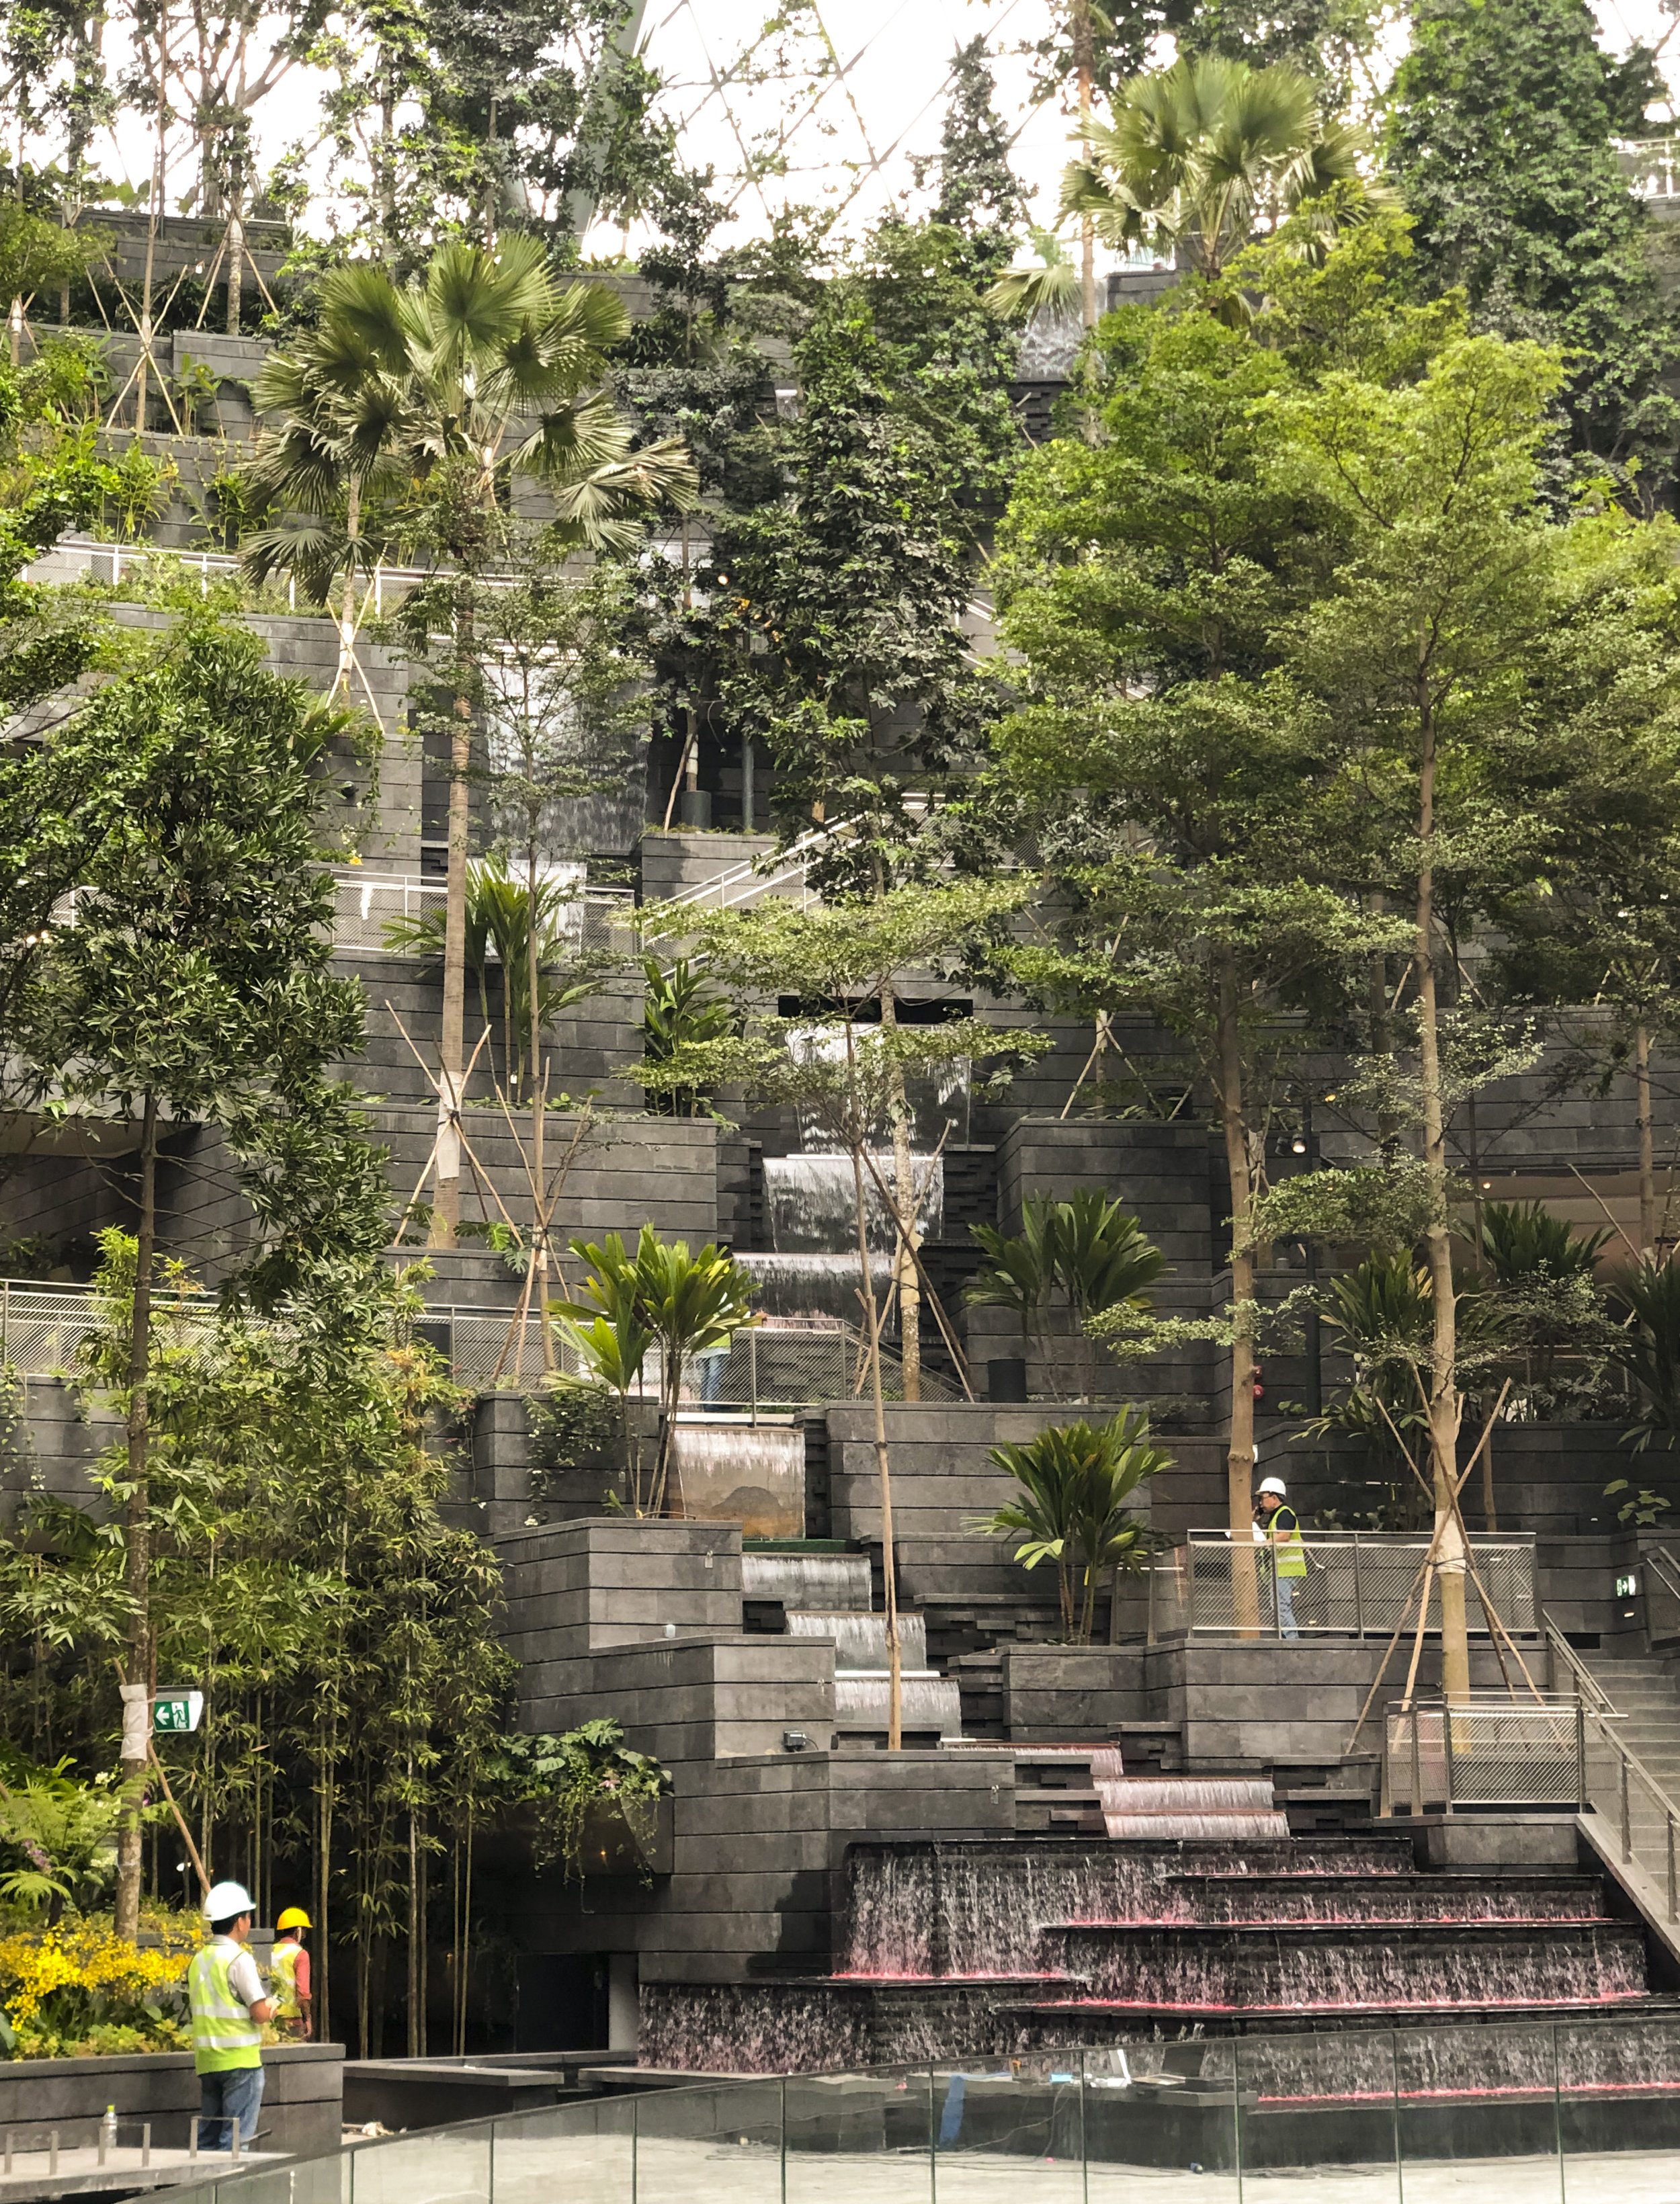 Cascading waterfall and over 200 species of plants create an indoor rainforest for visitors.